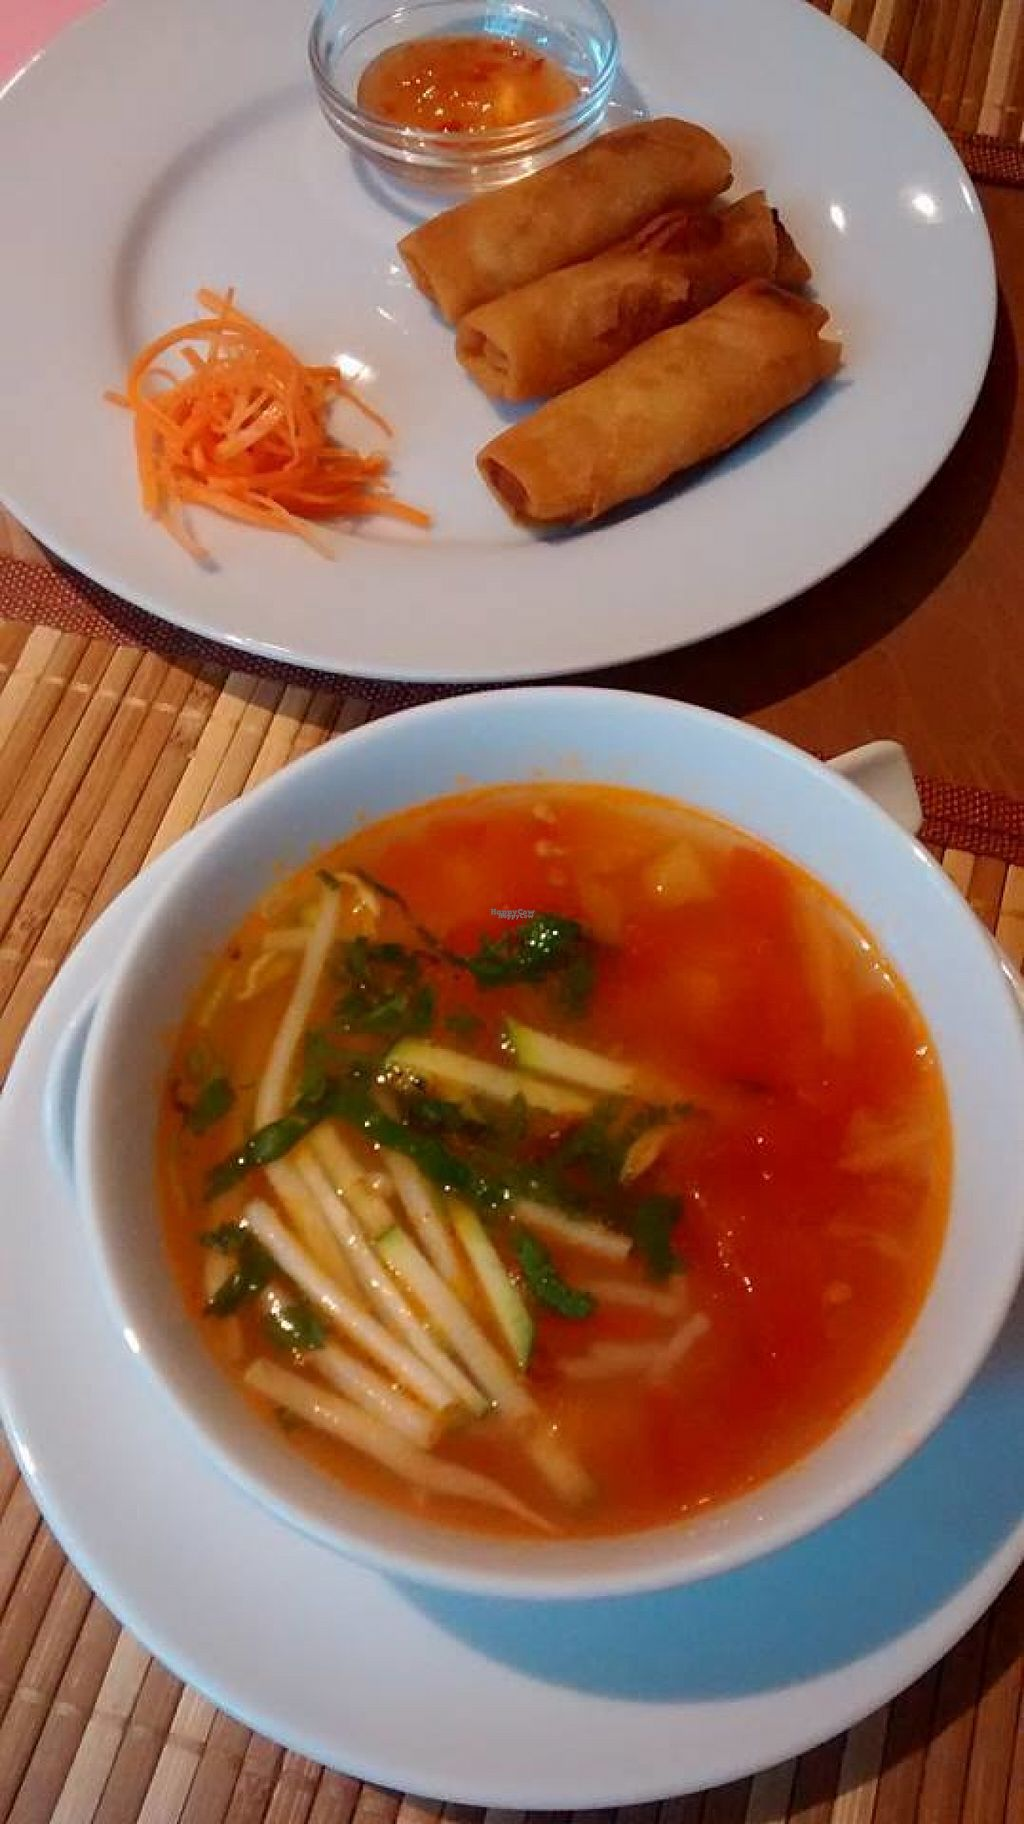 """Photo of Loving Hut - St Georg  by <a href=""""/members/profile/BlisterBlue"""">BlisterBlue</a> <br/>Soup and rolls included in the lunch menu: just delicious! <br/> November 2, 2016  - <a href='/contact/abuse/image/69030/186107'>Report</a>"""